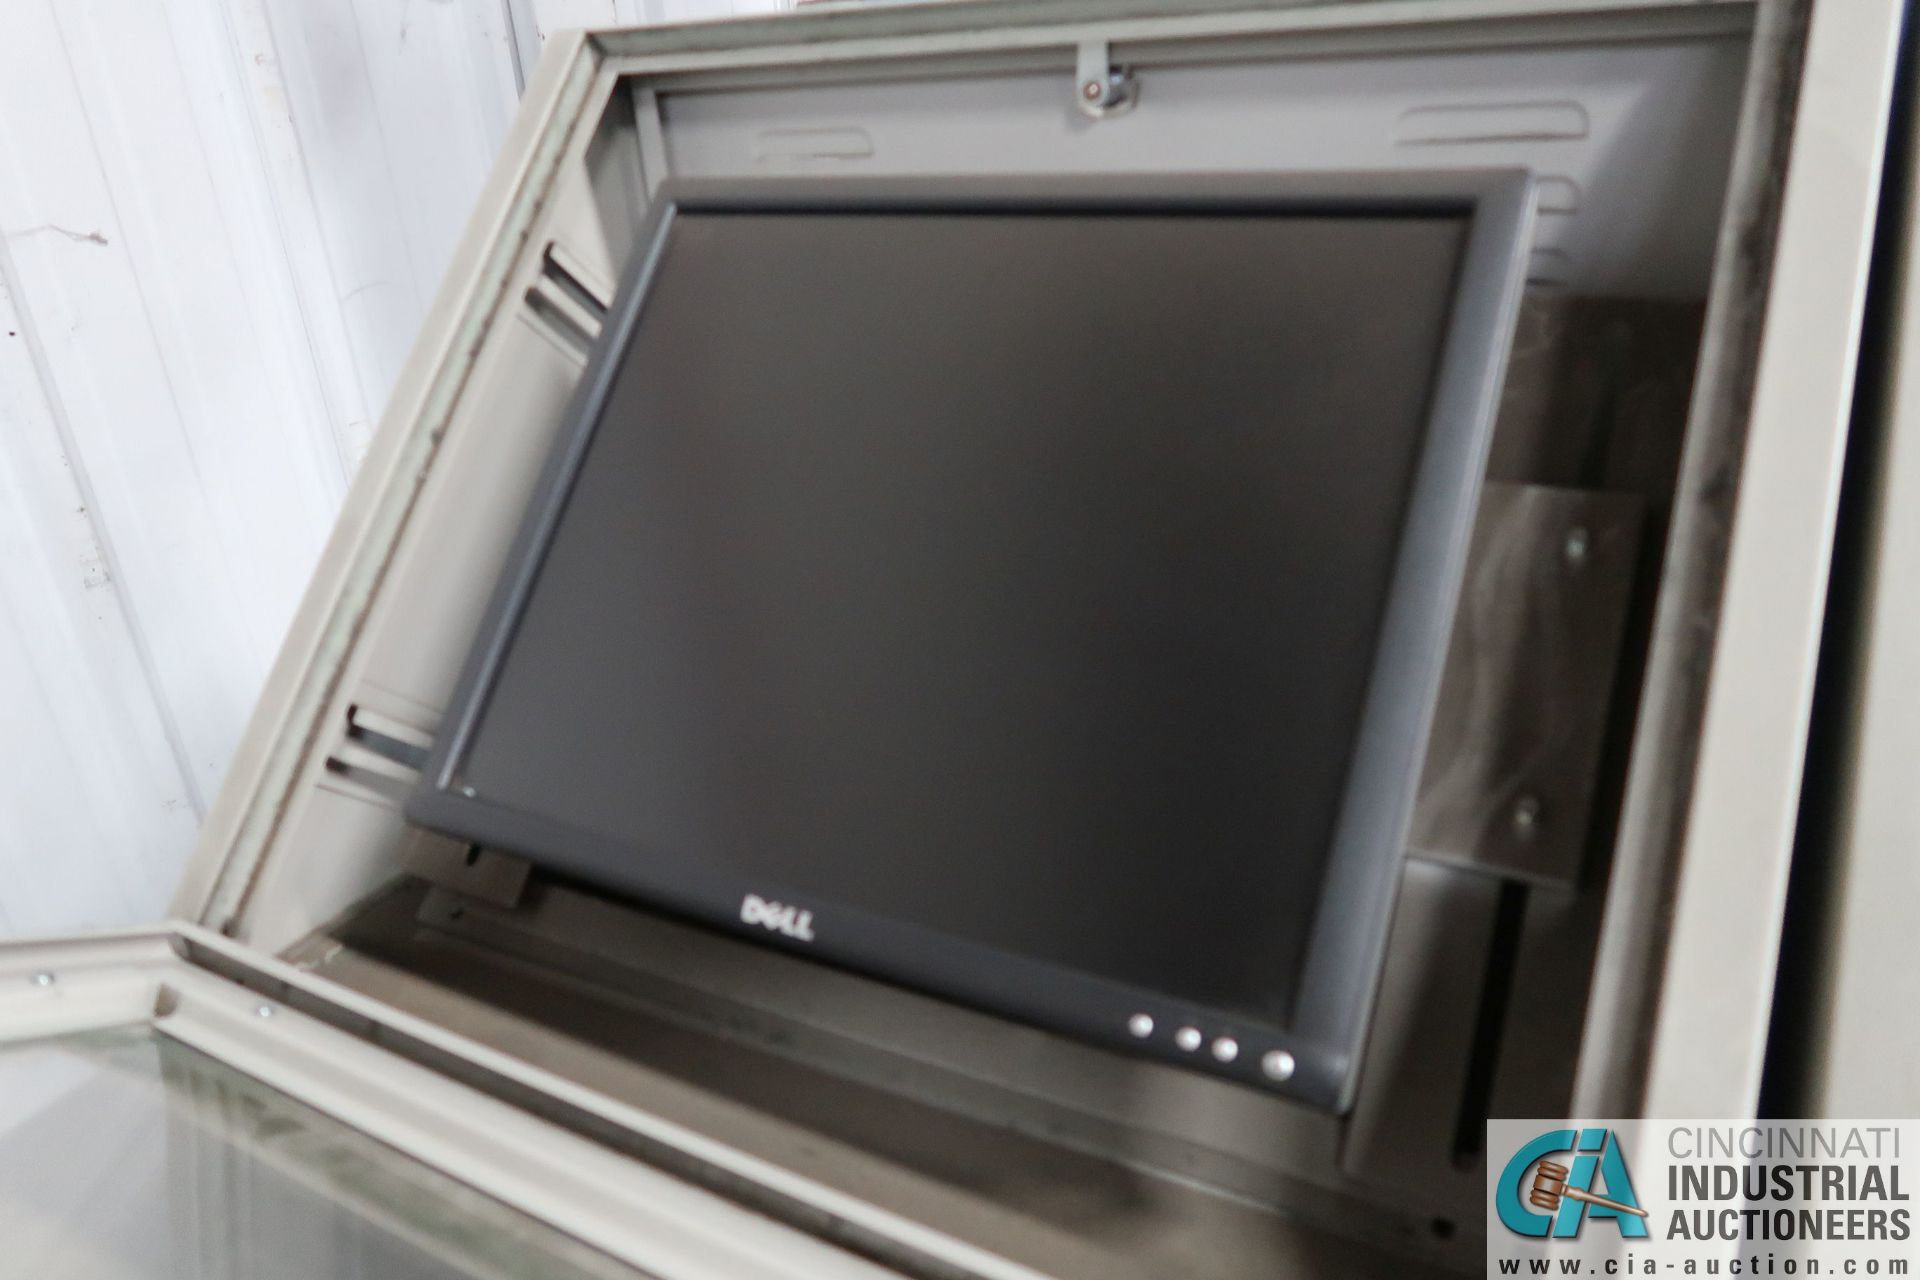 GLOBAL PORTABLE COMPUTER WORKSTATIONS WITH DELL FLAT SCREEN - Image 4 of 5